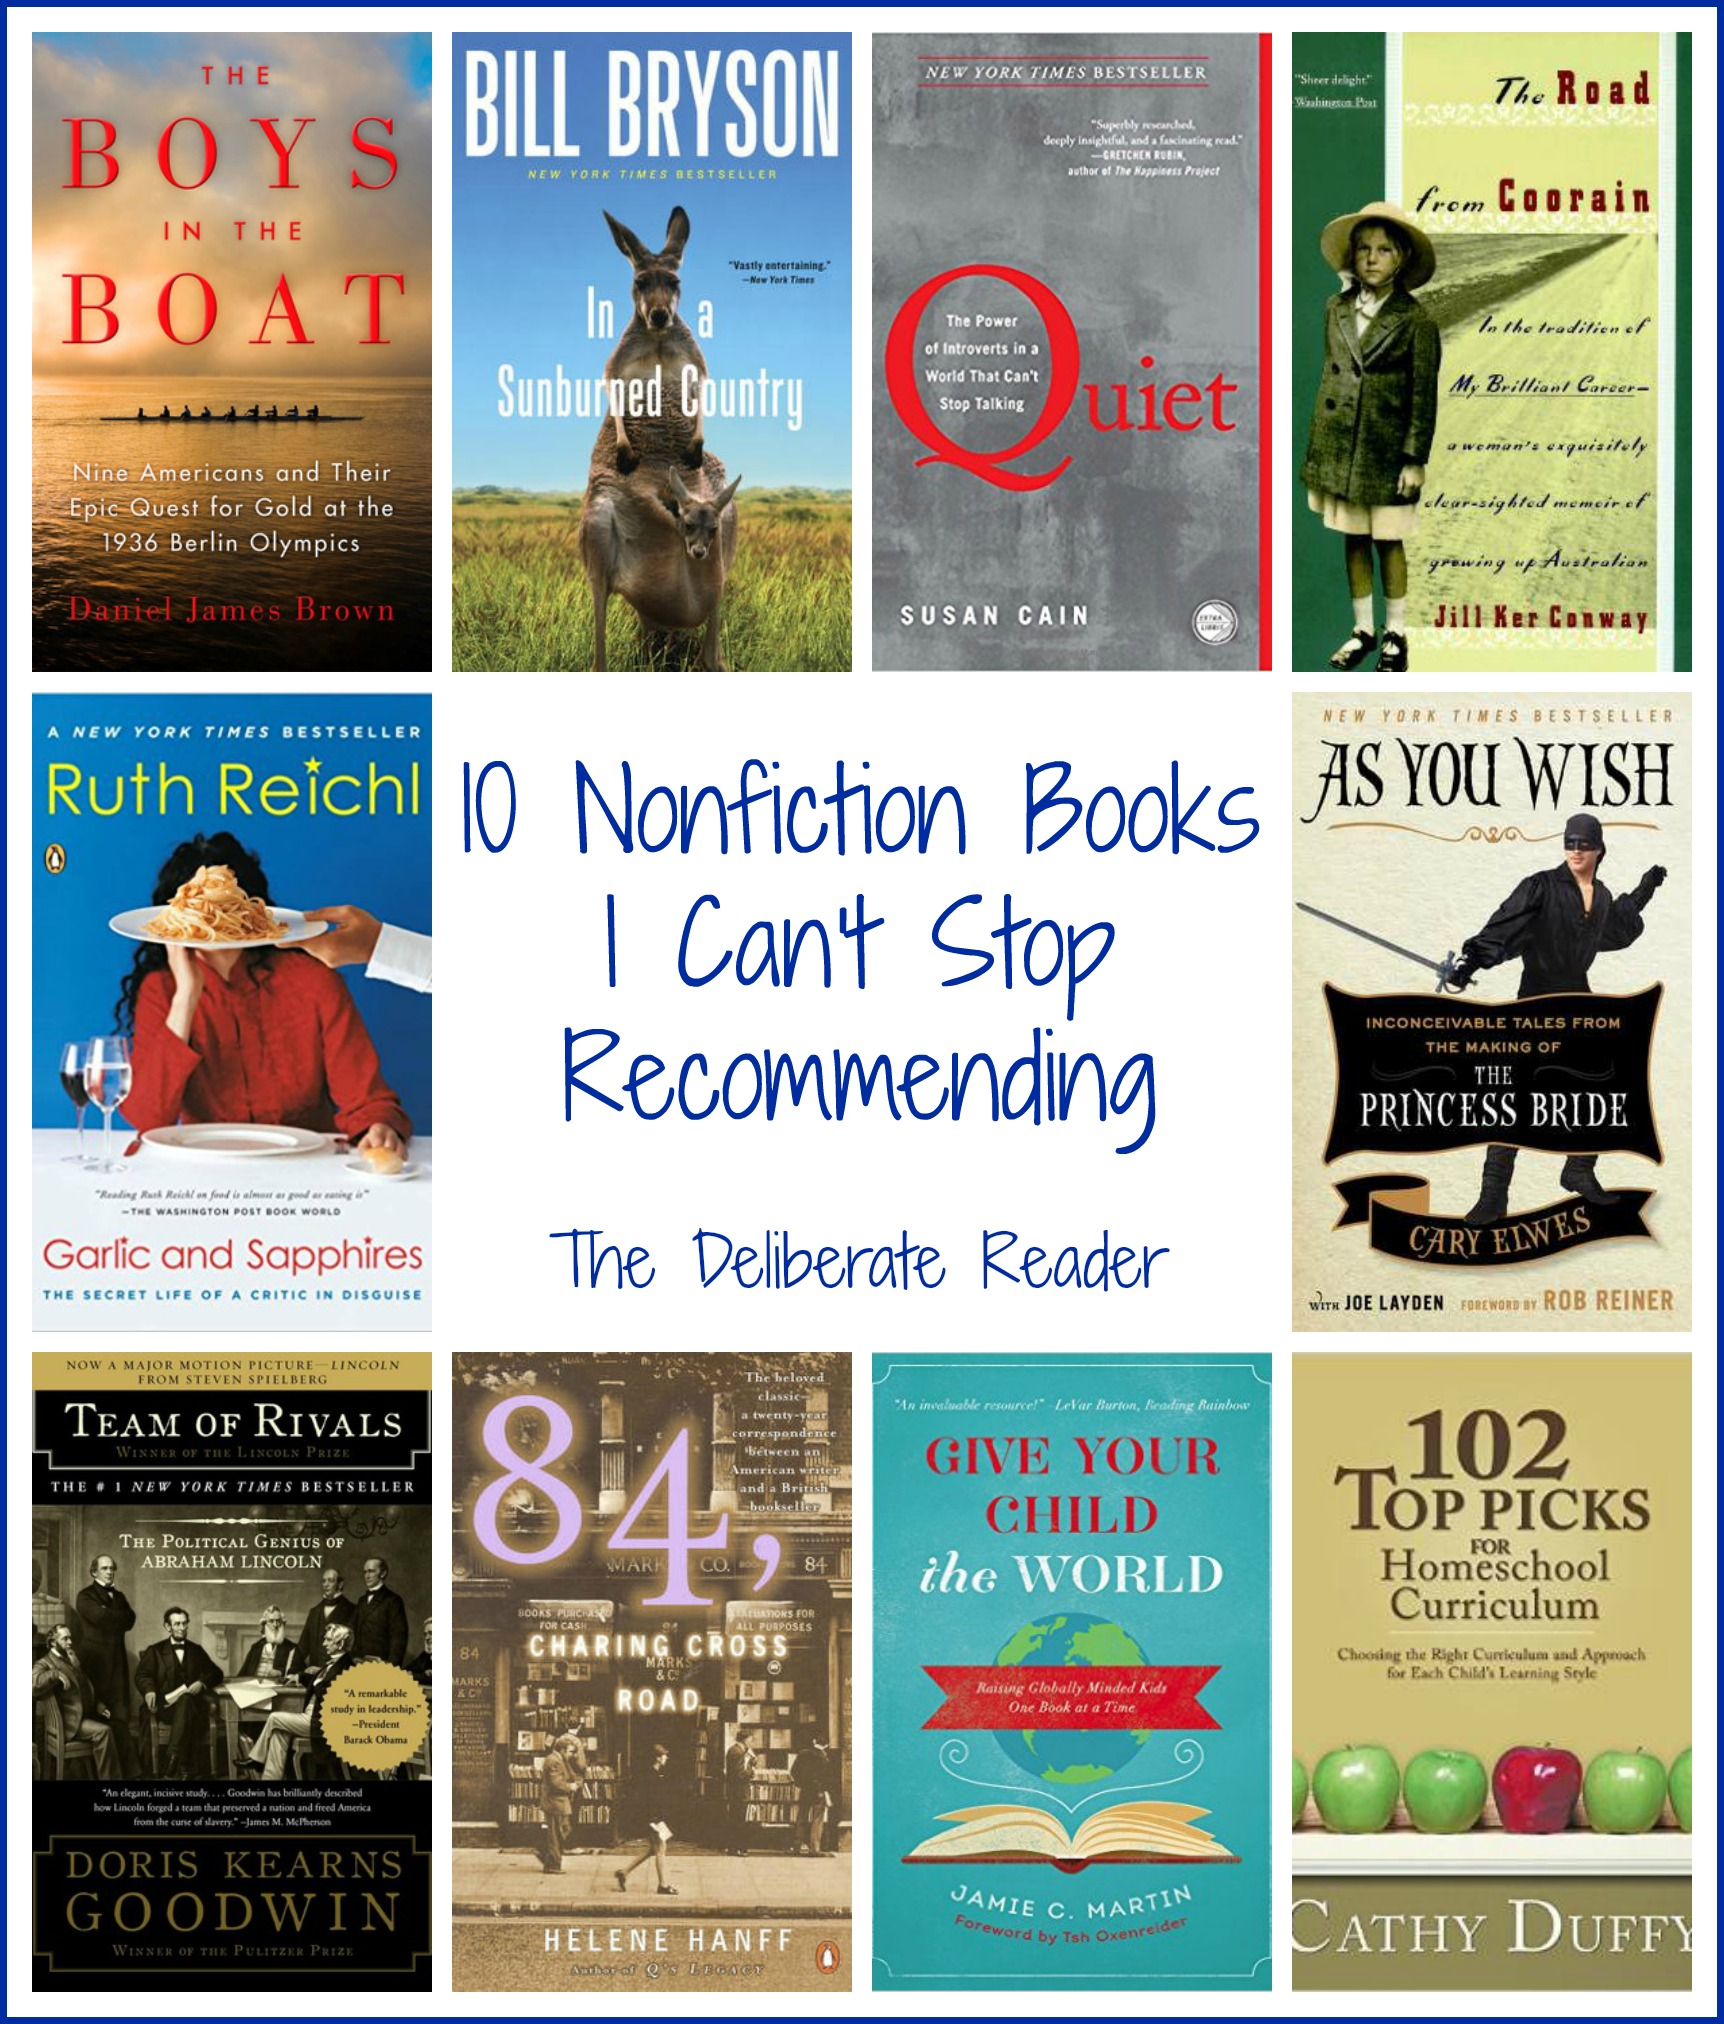 10 Nonfiction Books I Can't Stop Recommending